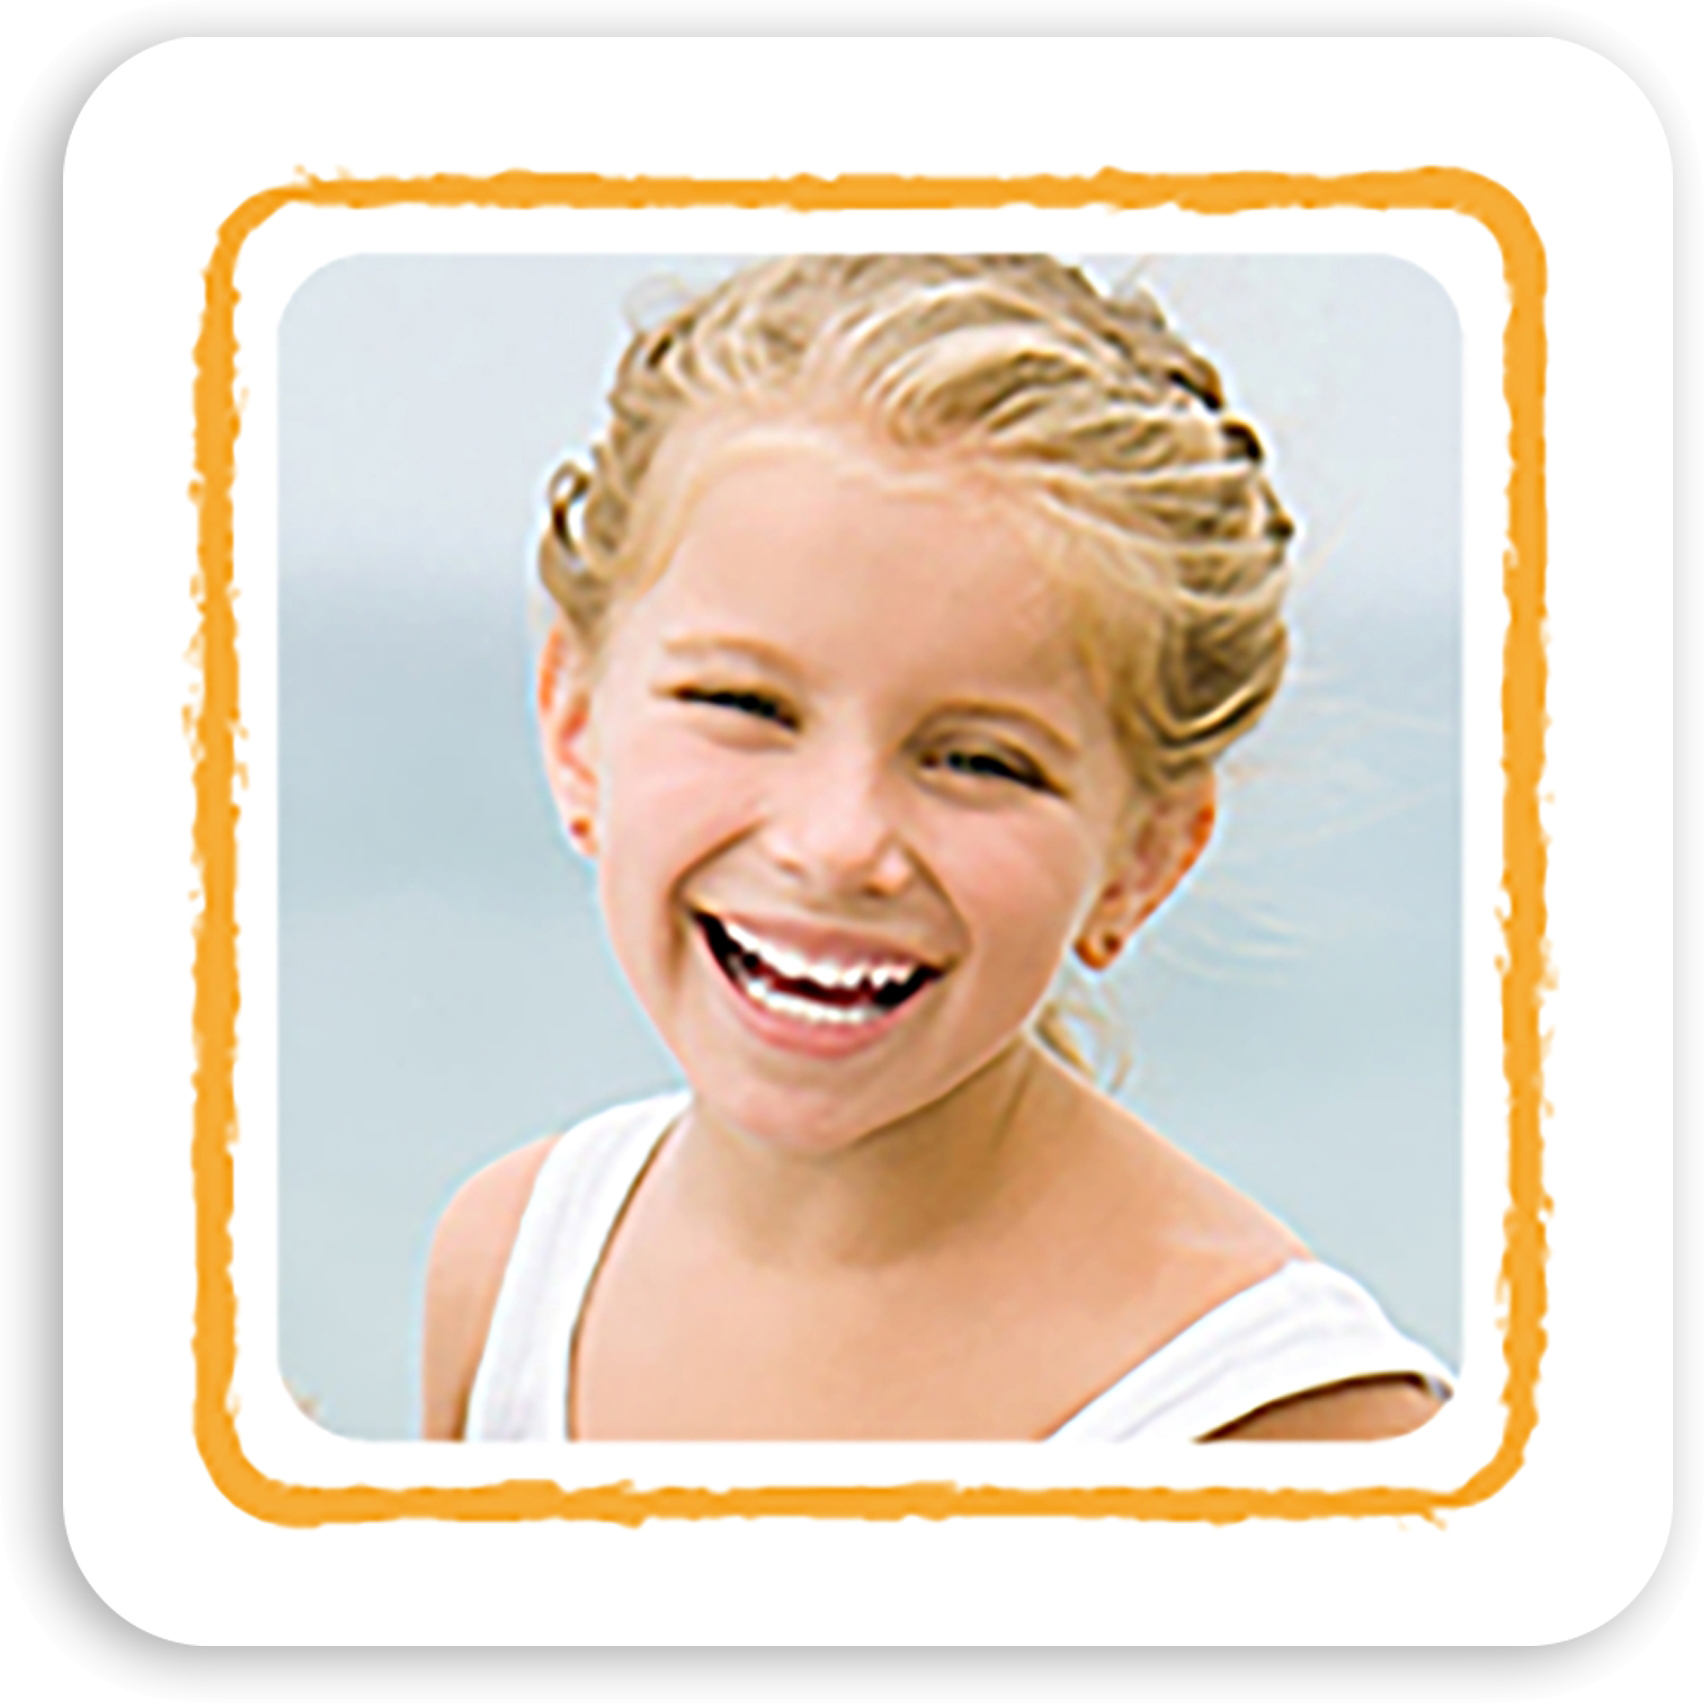 Back to School - Personalized 1.75 x 1.75 Square Seal Sticker